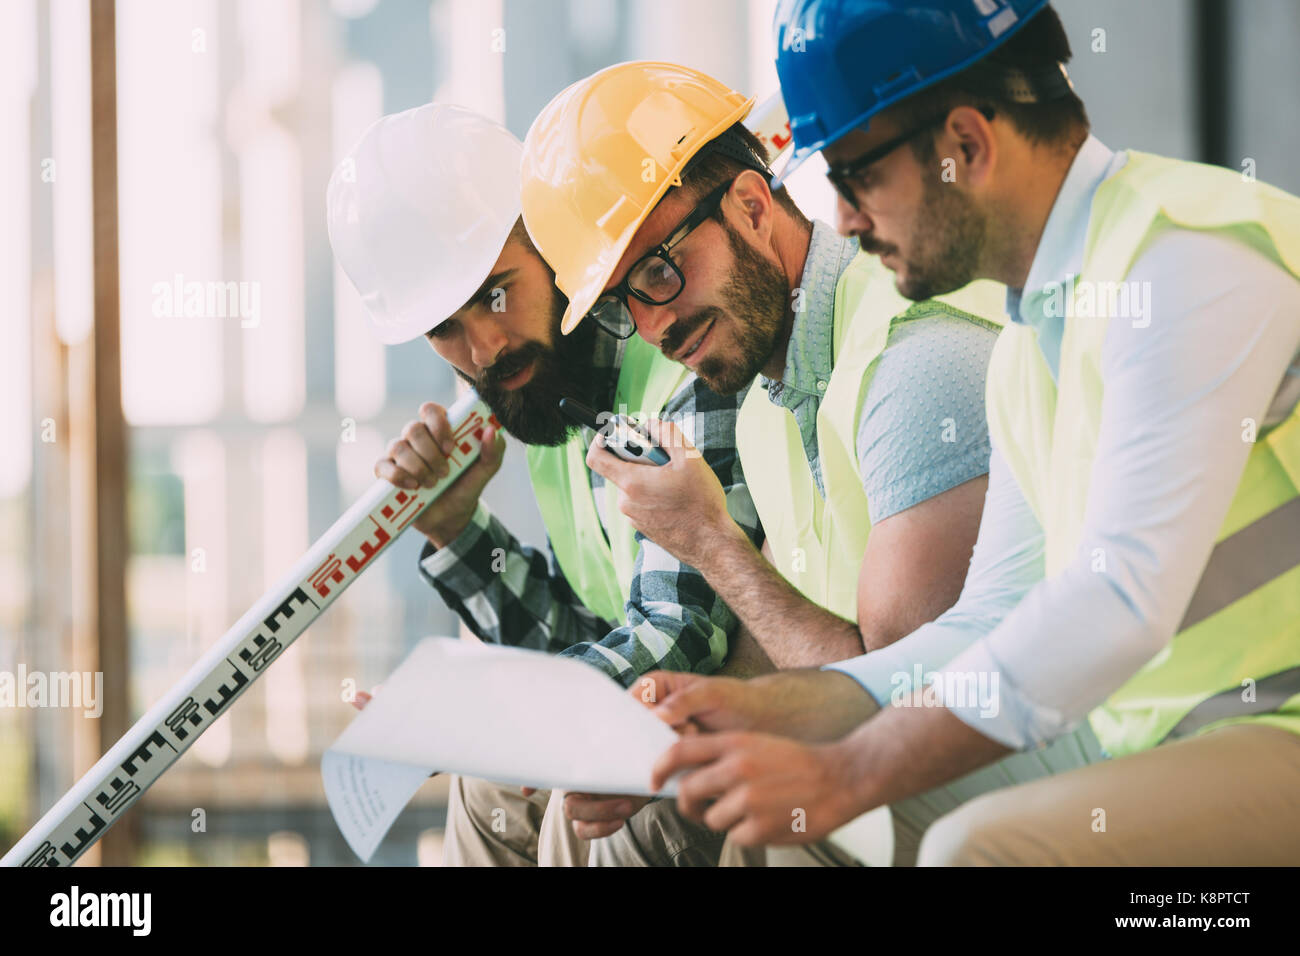 Portrait of construction engineers working on building site - Stock Image